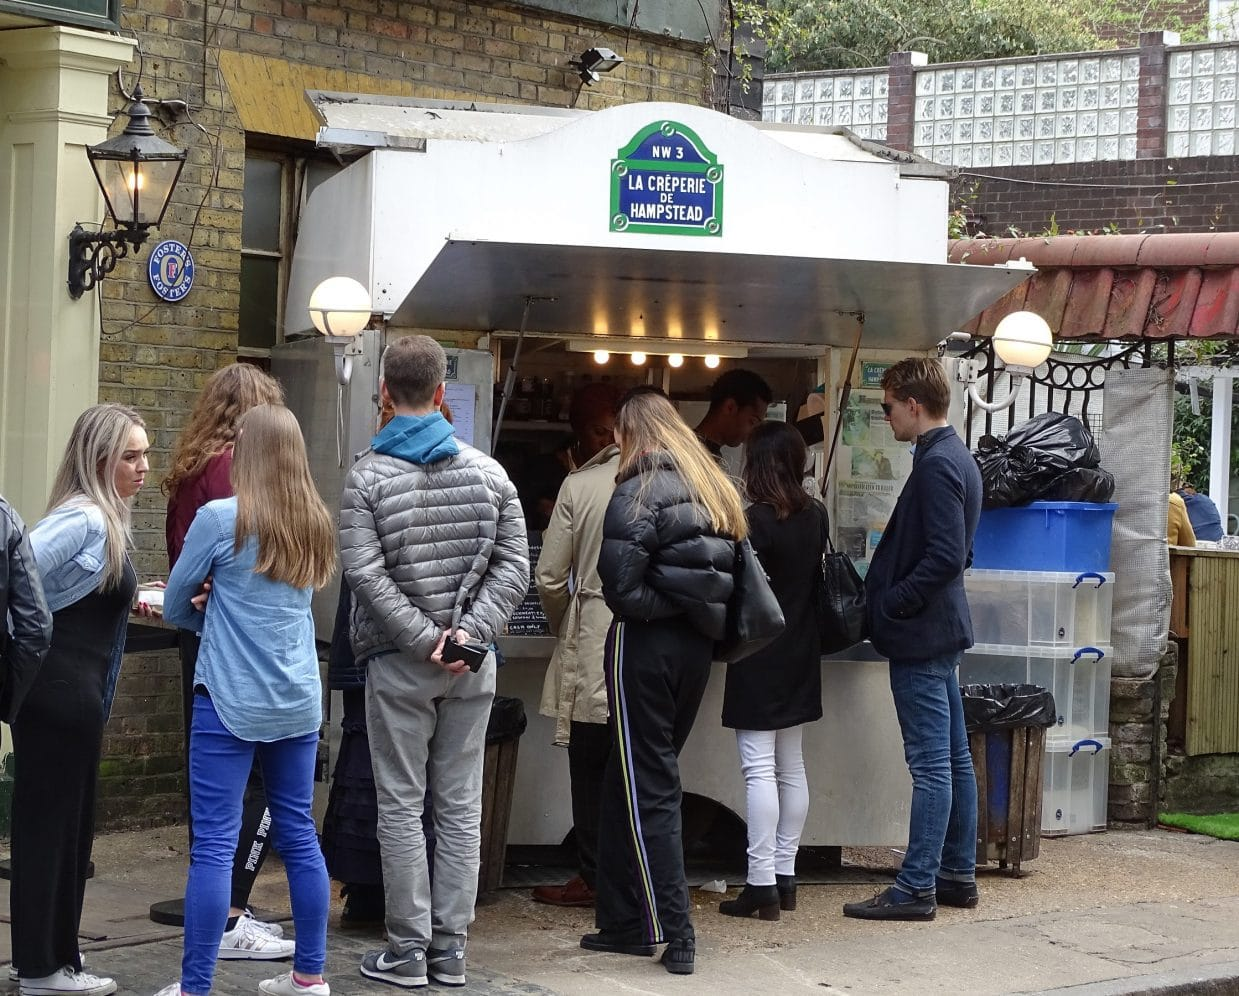 Visit the creperie in Hampstead, London